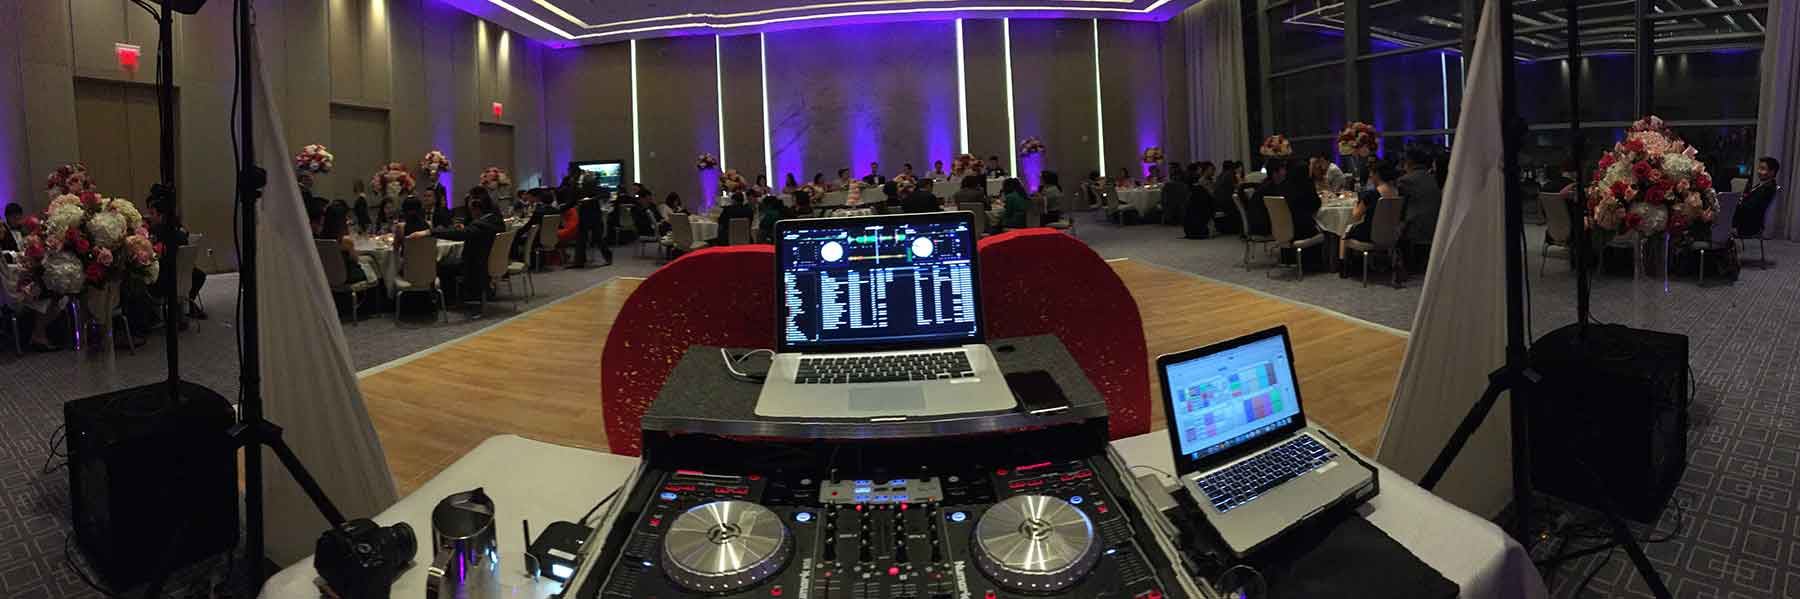 Four-Seasons-Wedding-DJ-Set-up